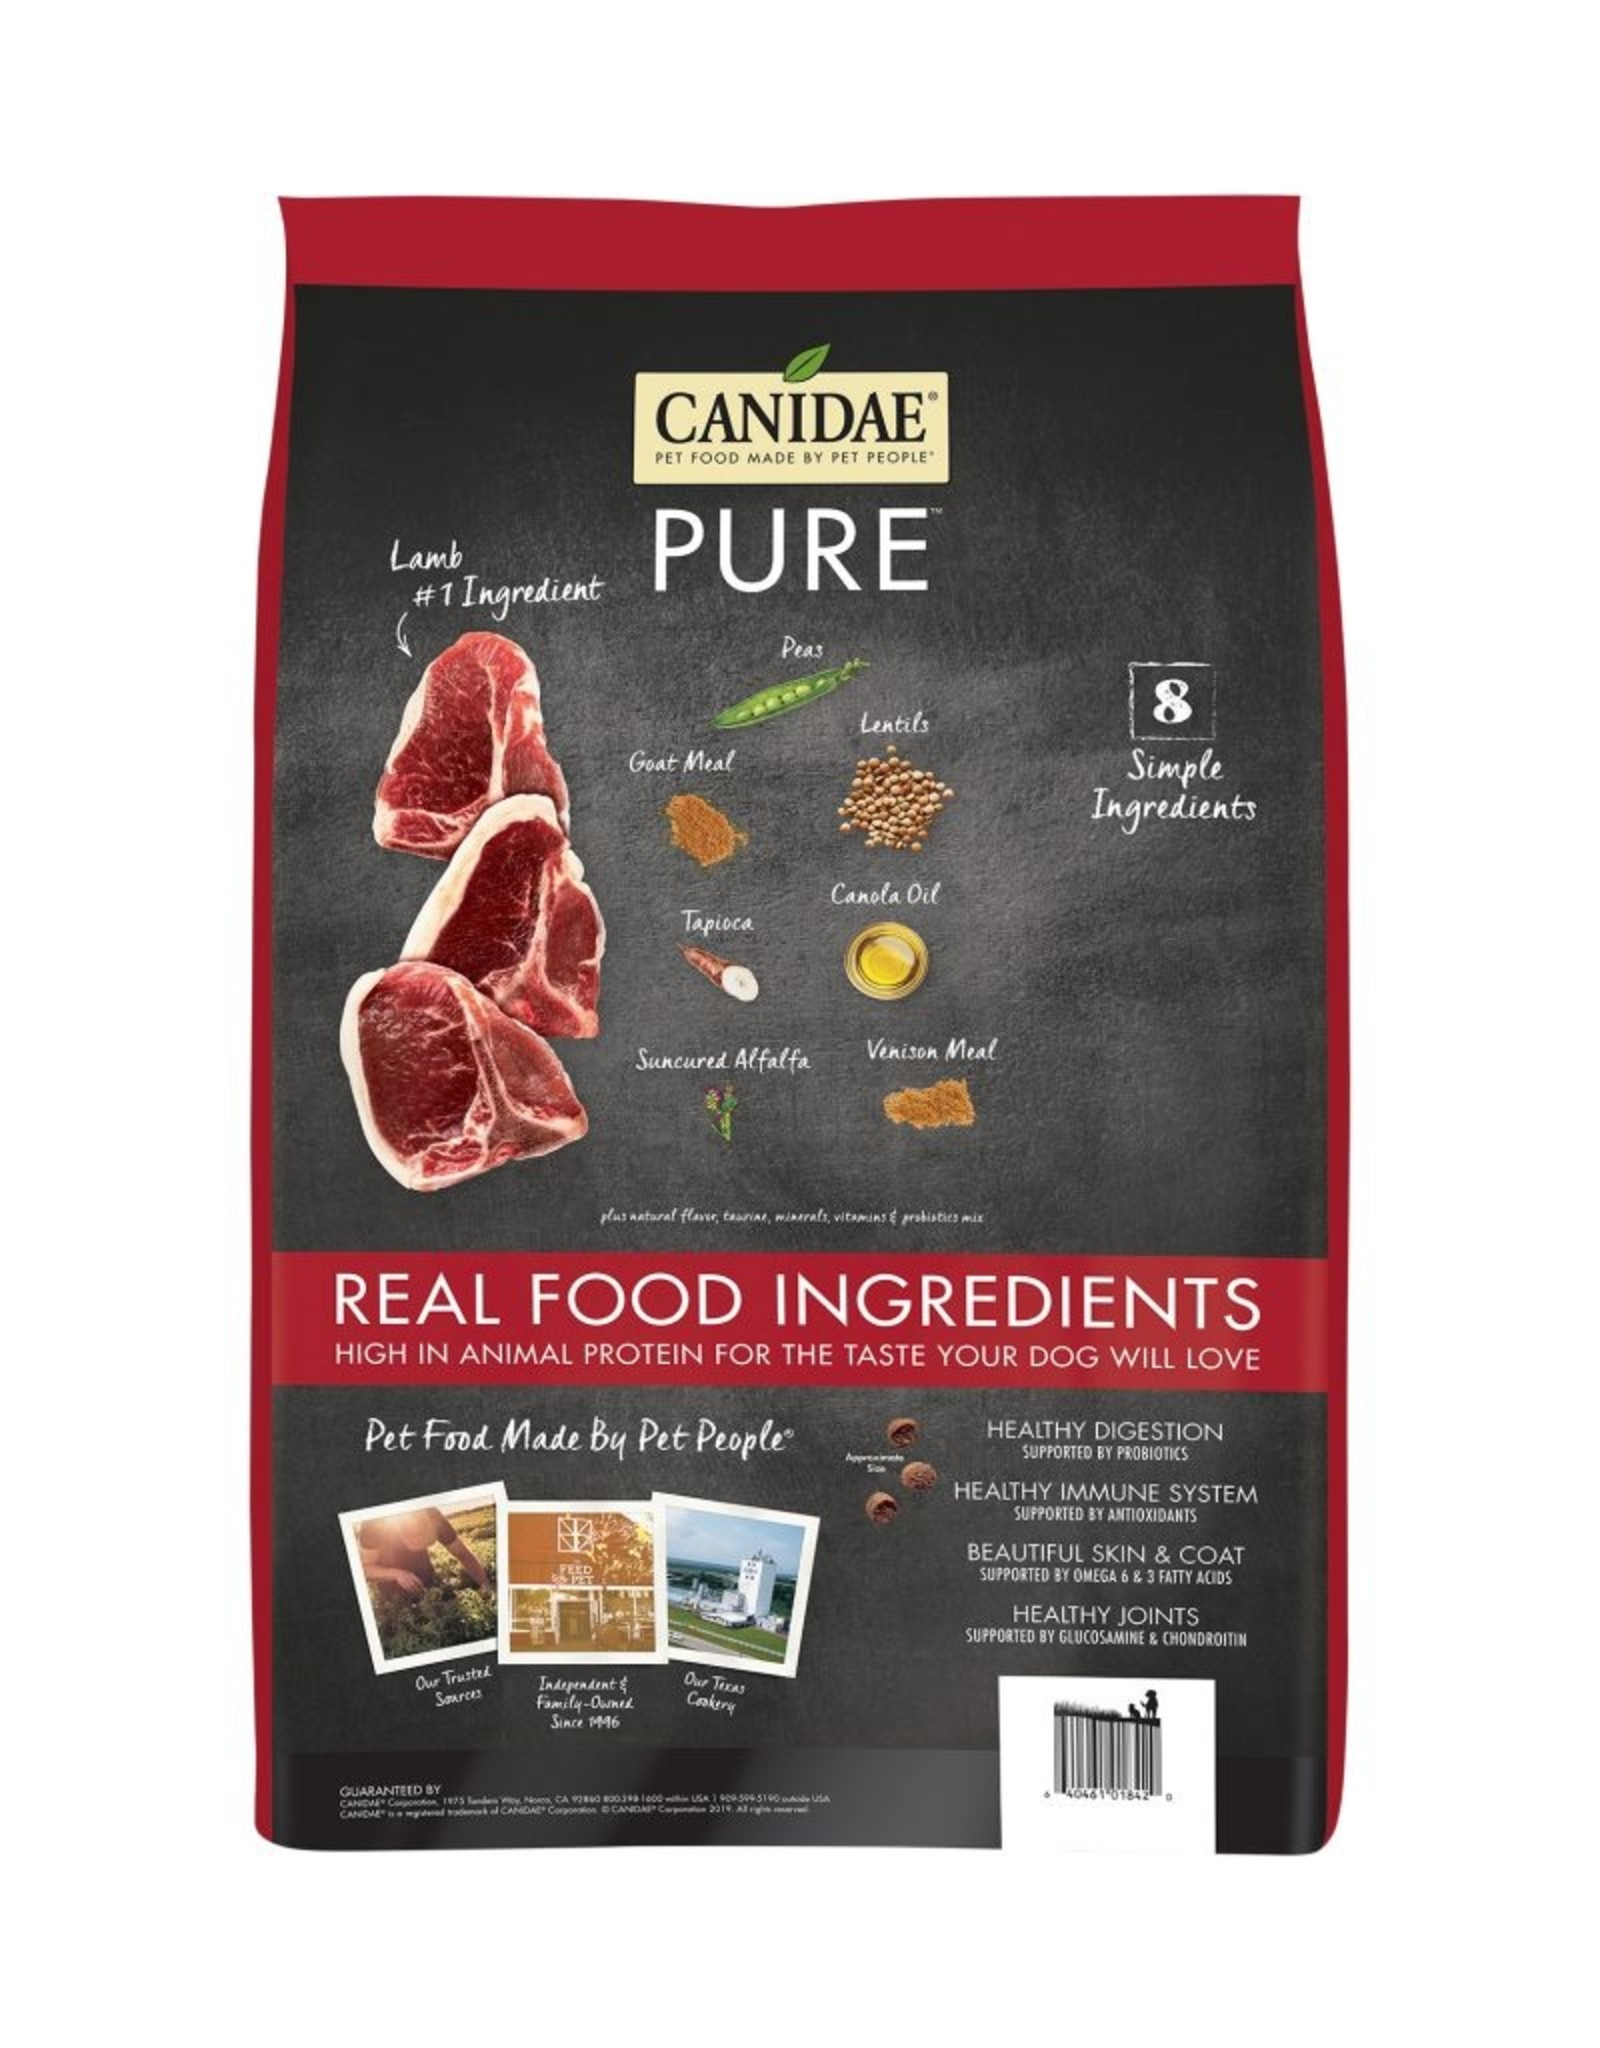 CANIDAE PET FOODS CANIDAE DOG GRAIN FREE PURE LAMB, GOAT, & VENISON 24LBS